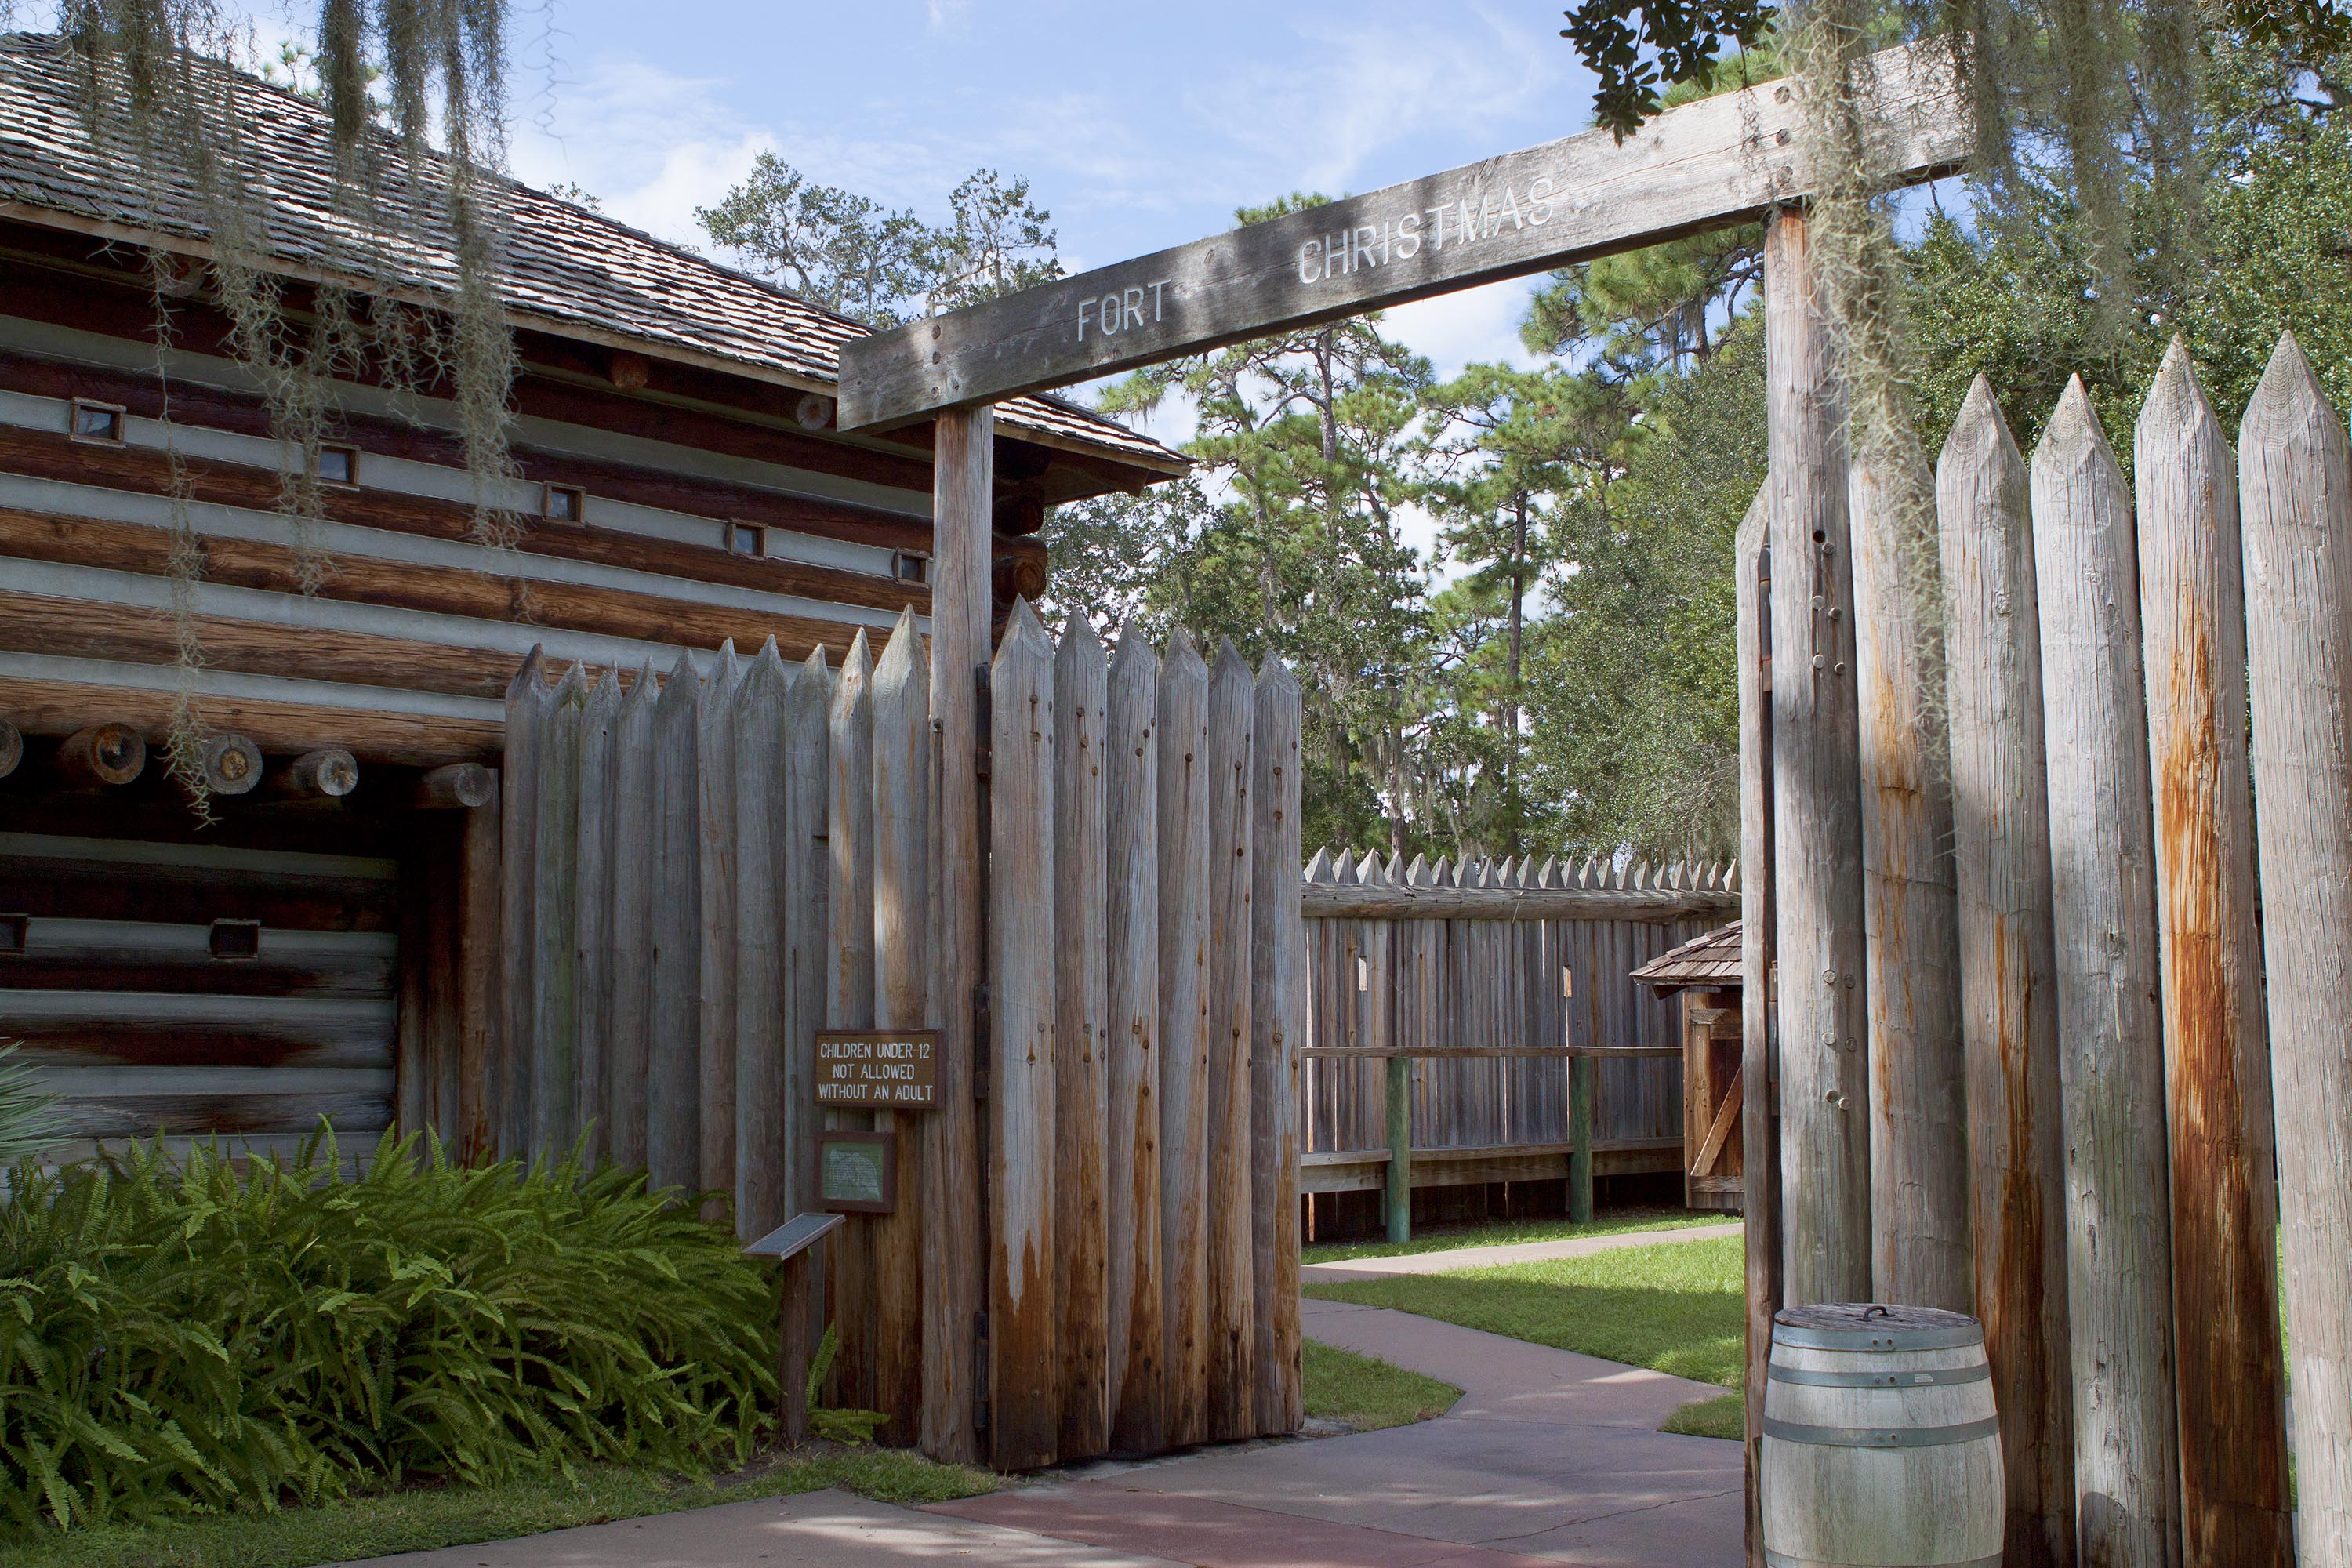 File:Fort Christmas historical Park - Fort Entrance.jpg ...